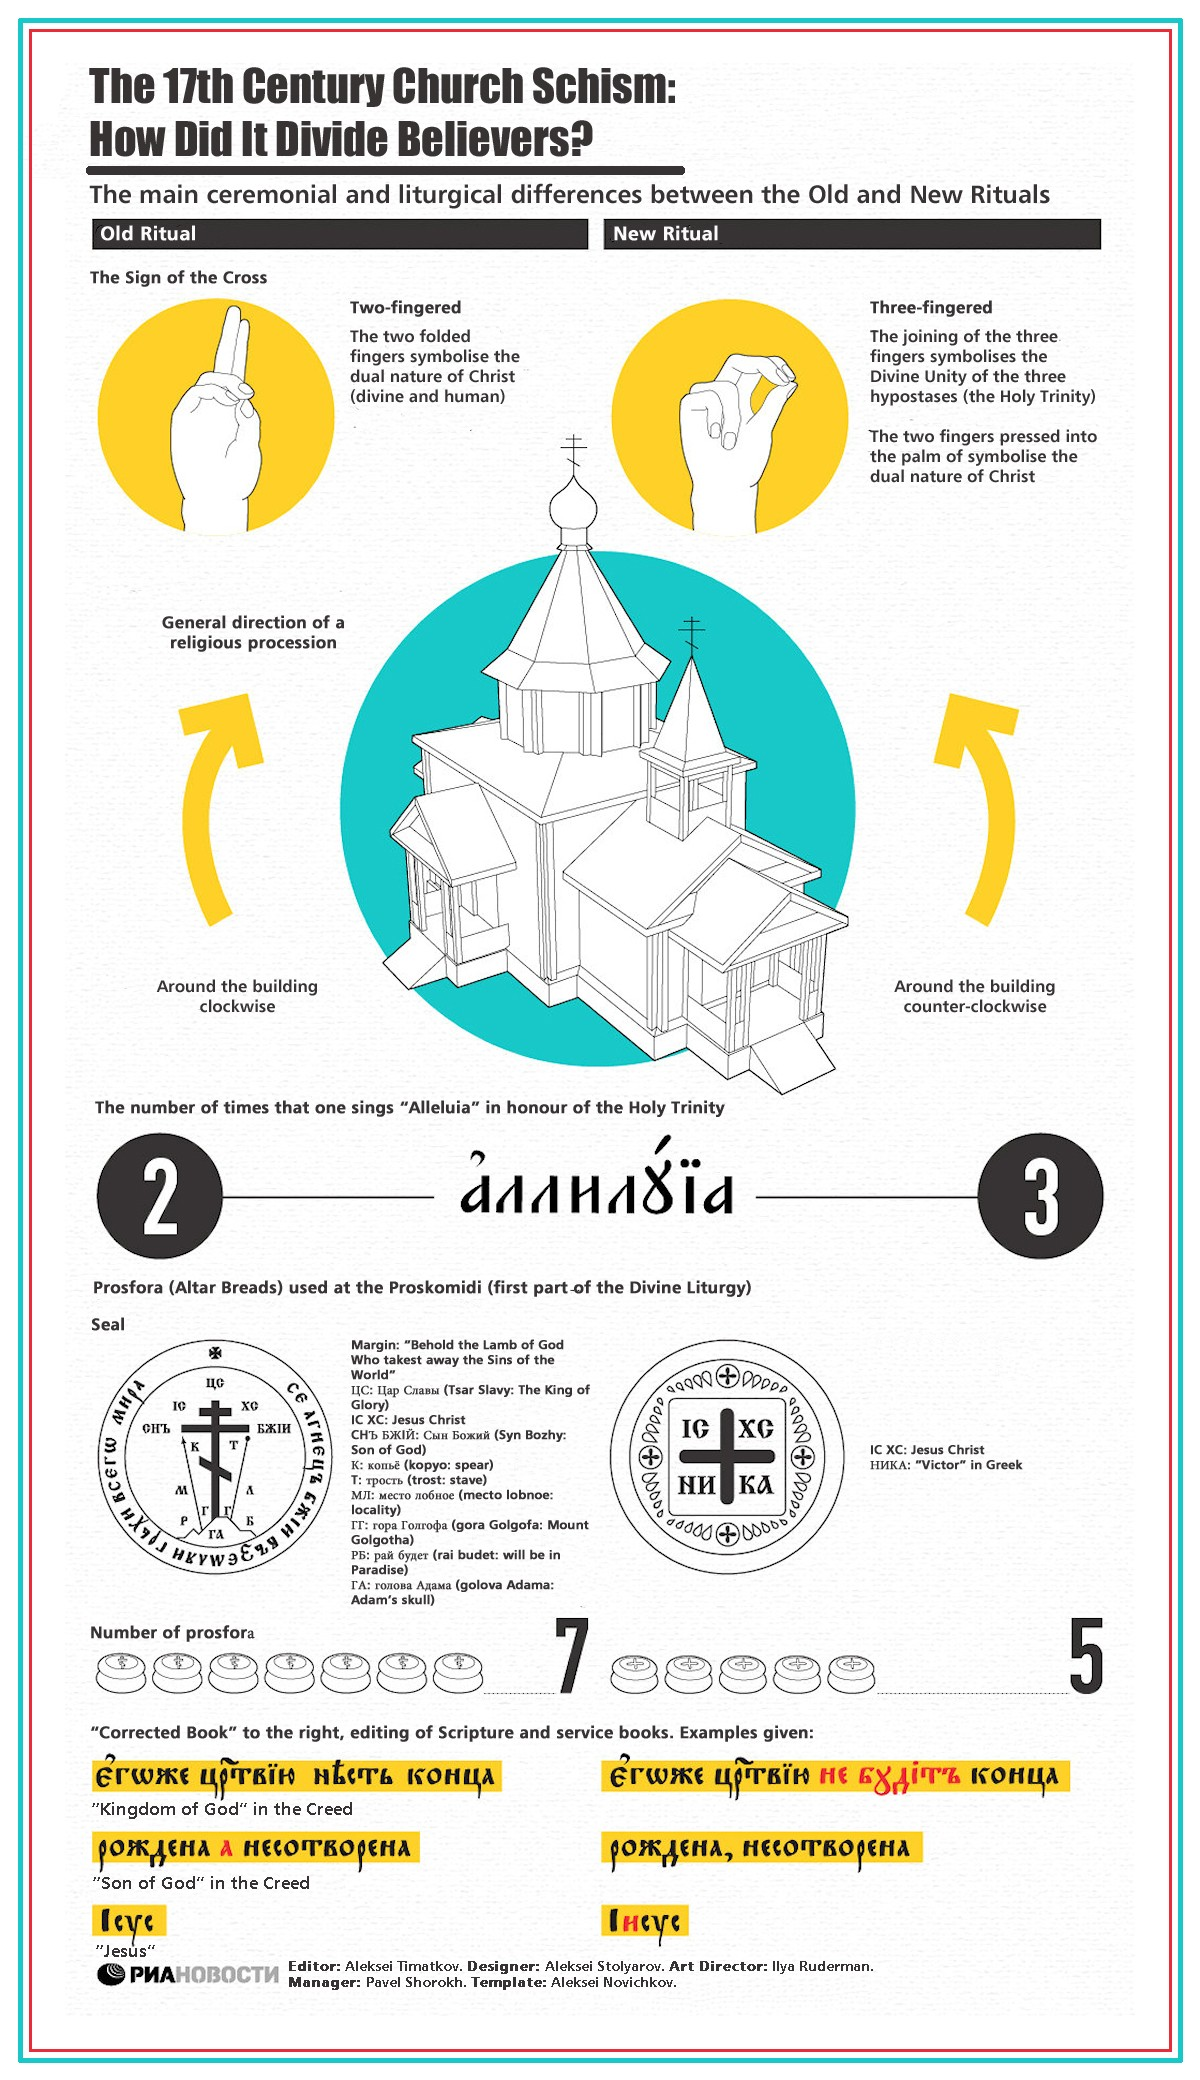 00 RIA-Novosti Infographics. The 17th Century Church Schism. How Did It Divide Believers. 2013